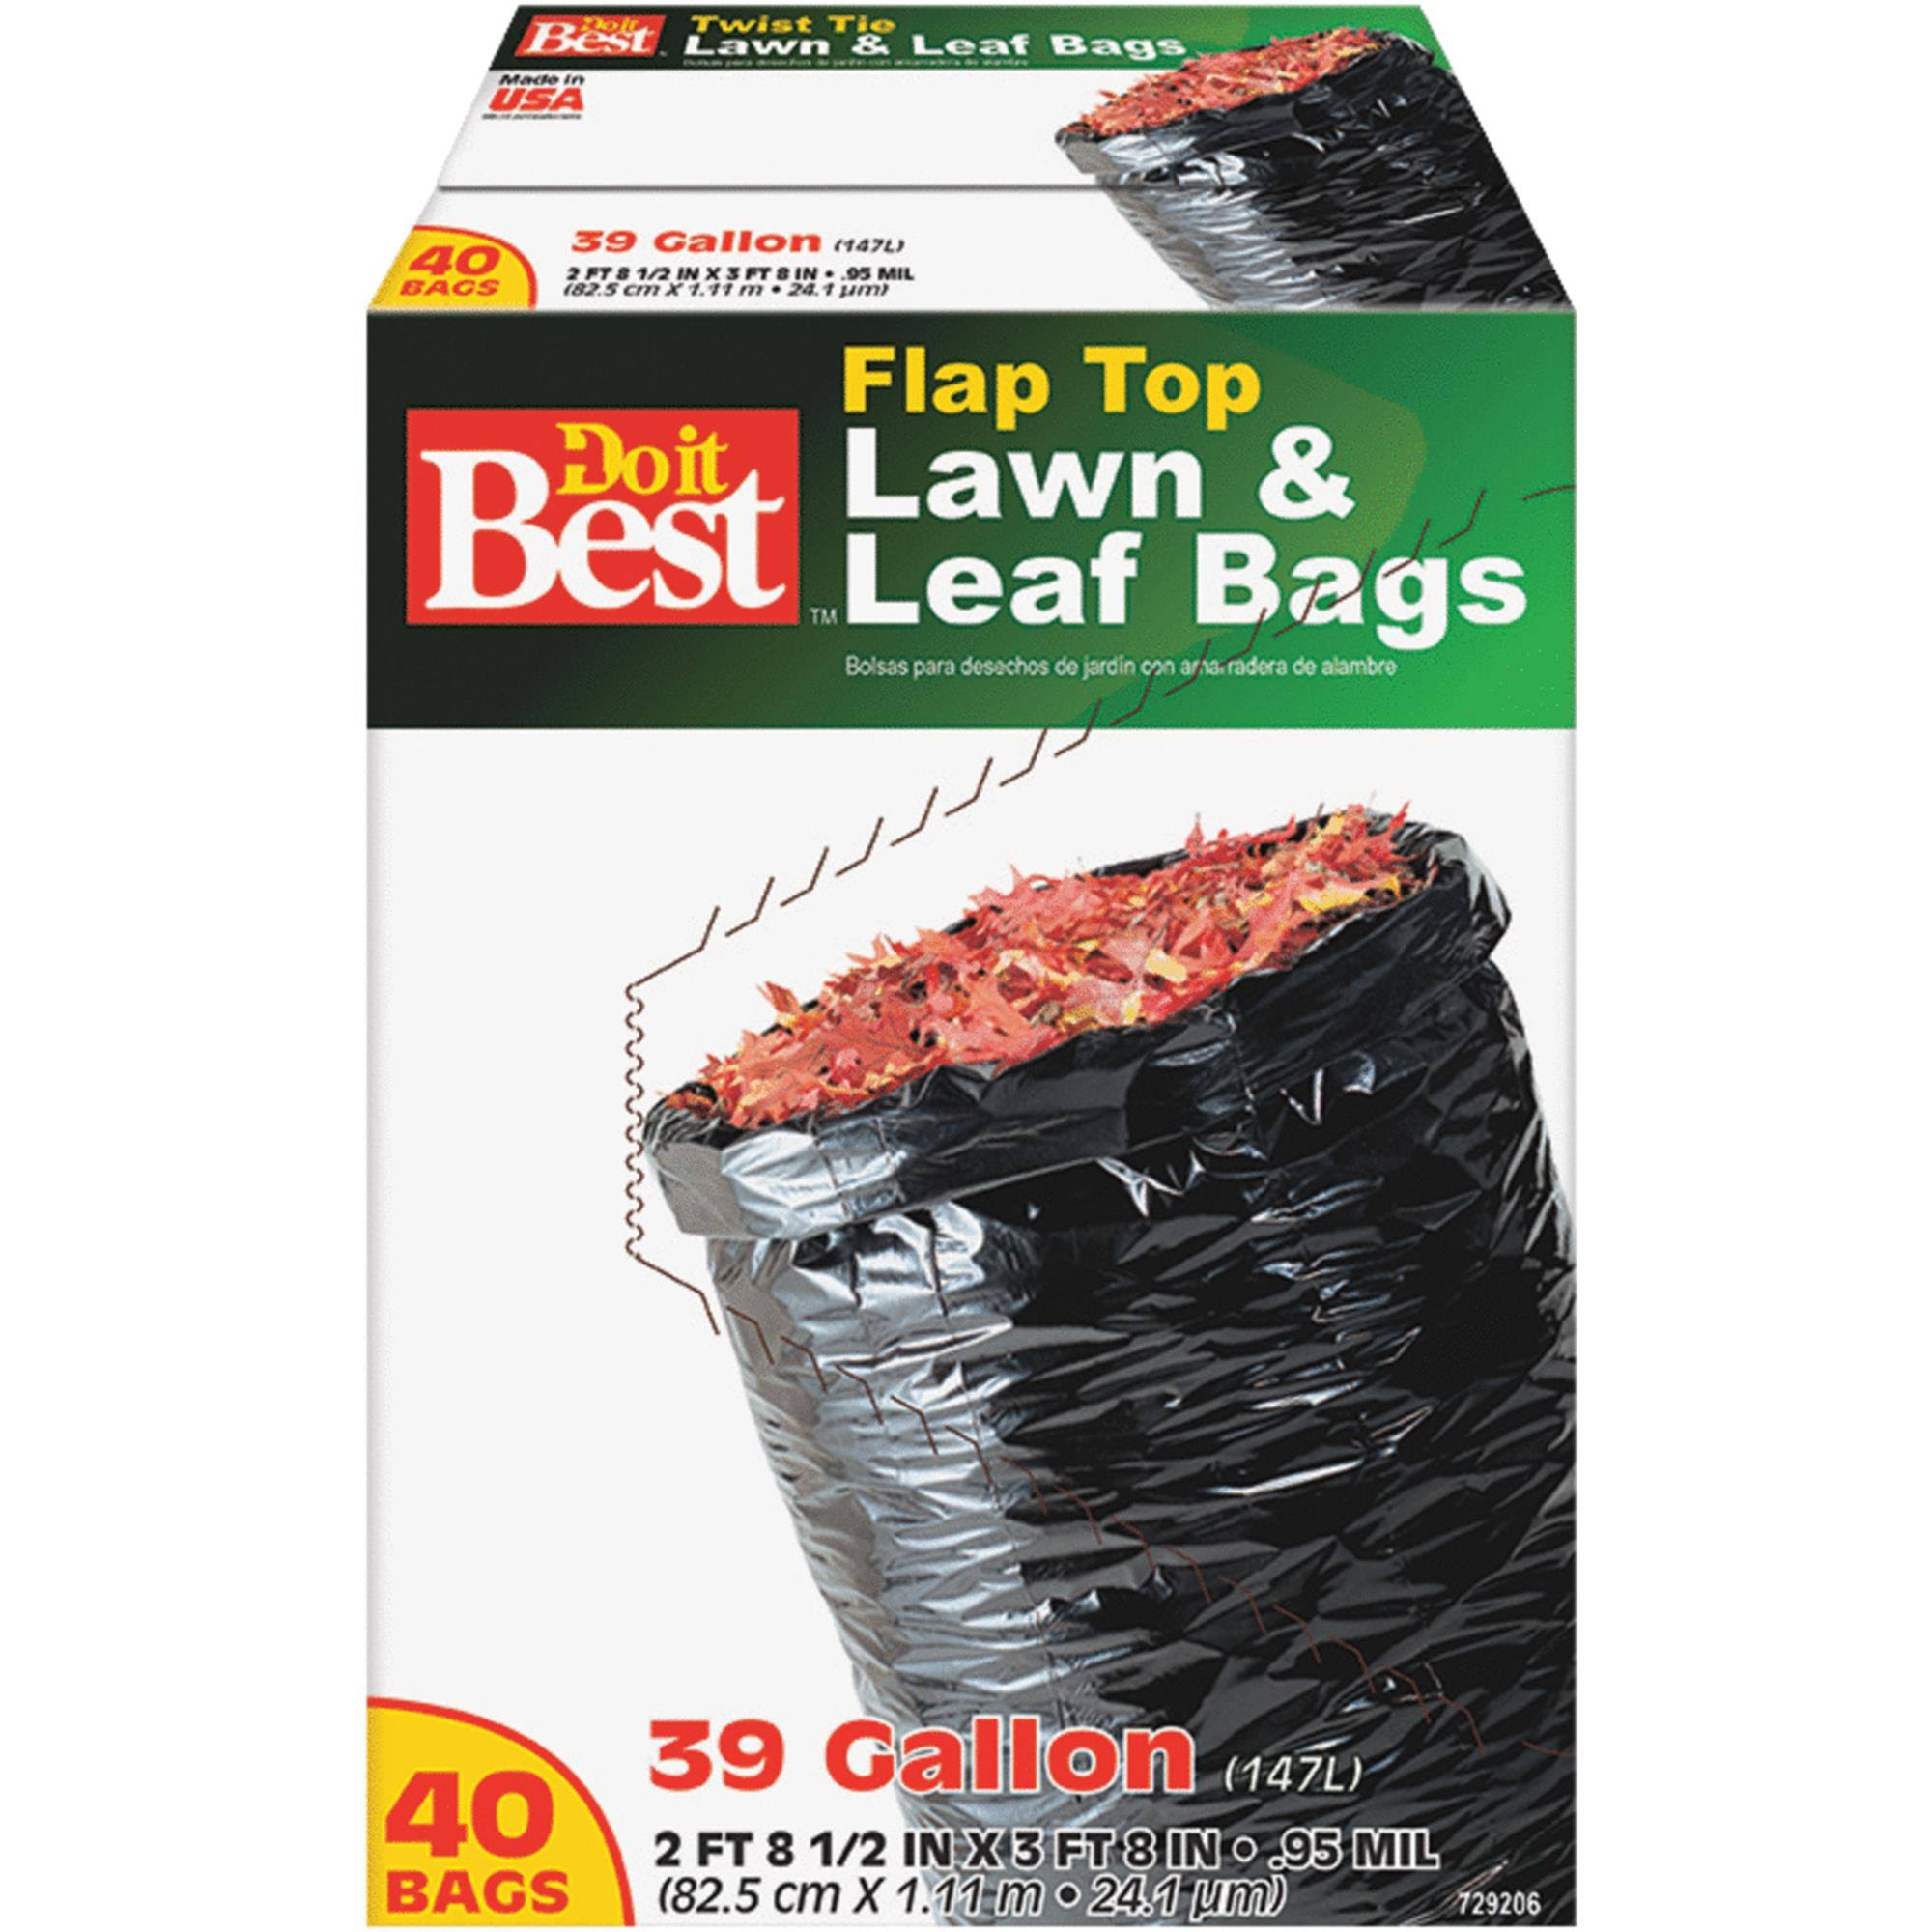 Do it Best Lawn & Leaf Bag - Black, 39 gal, 40 Bags